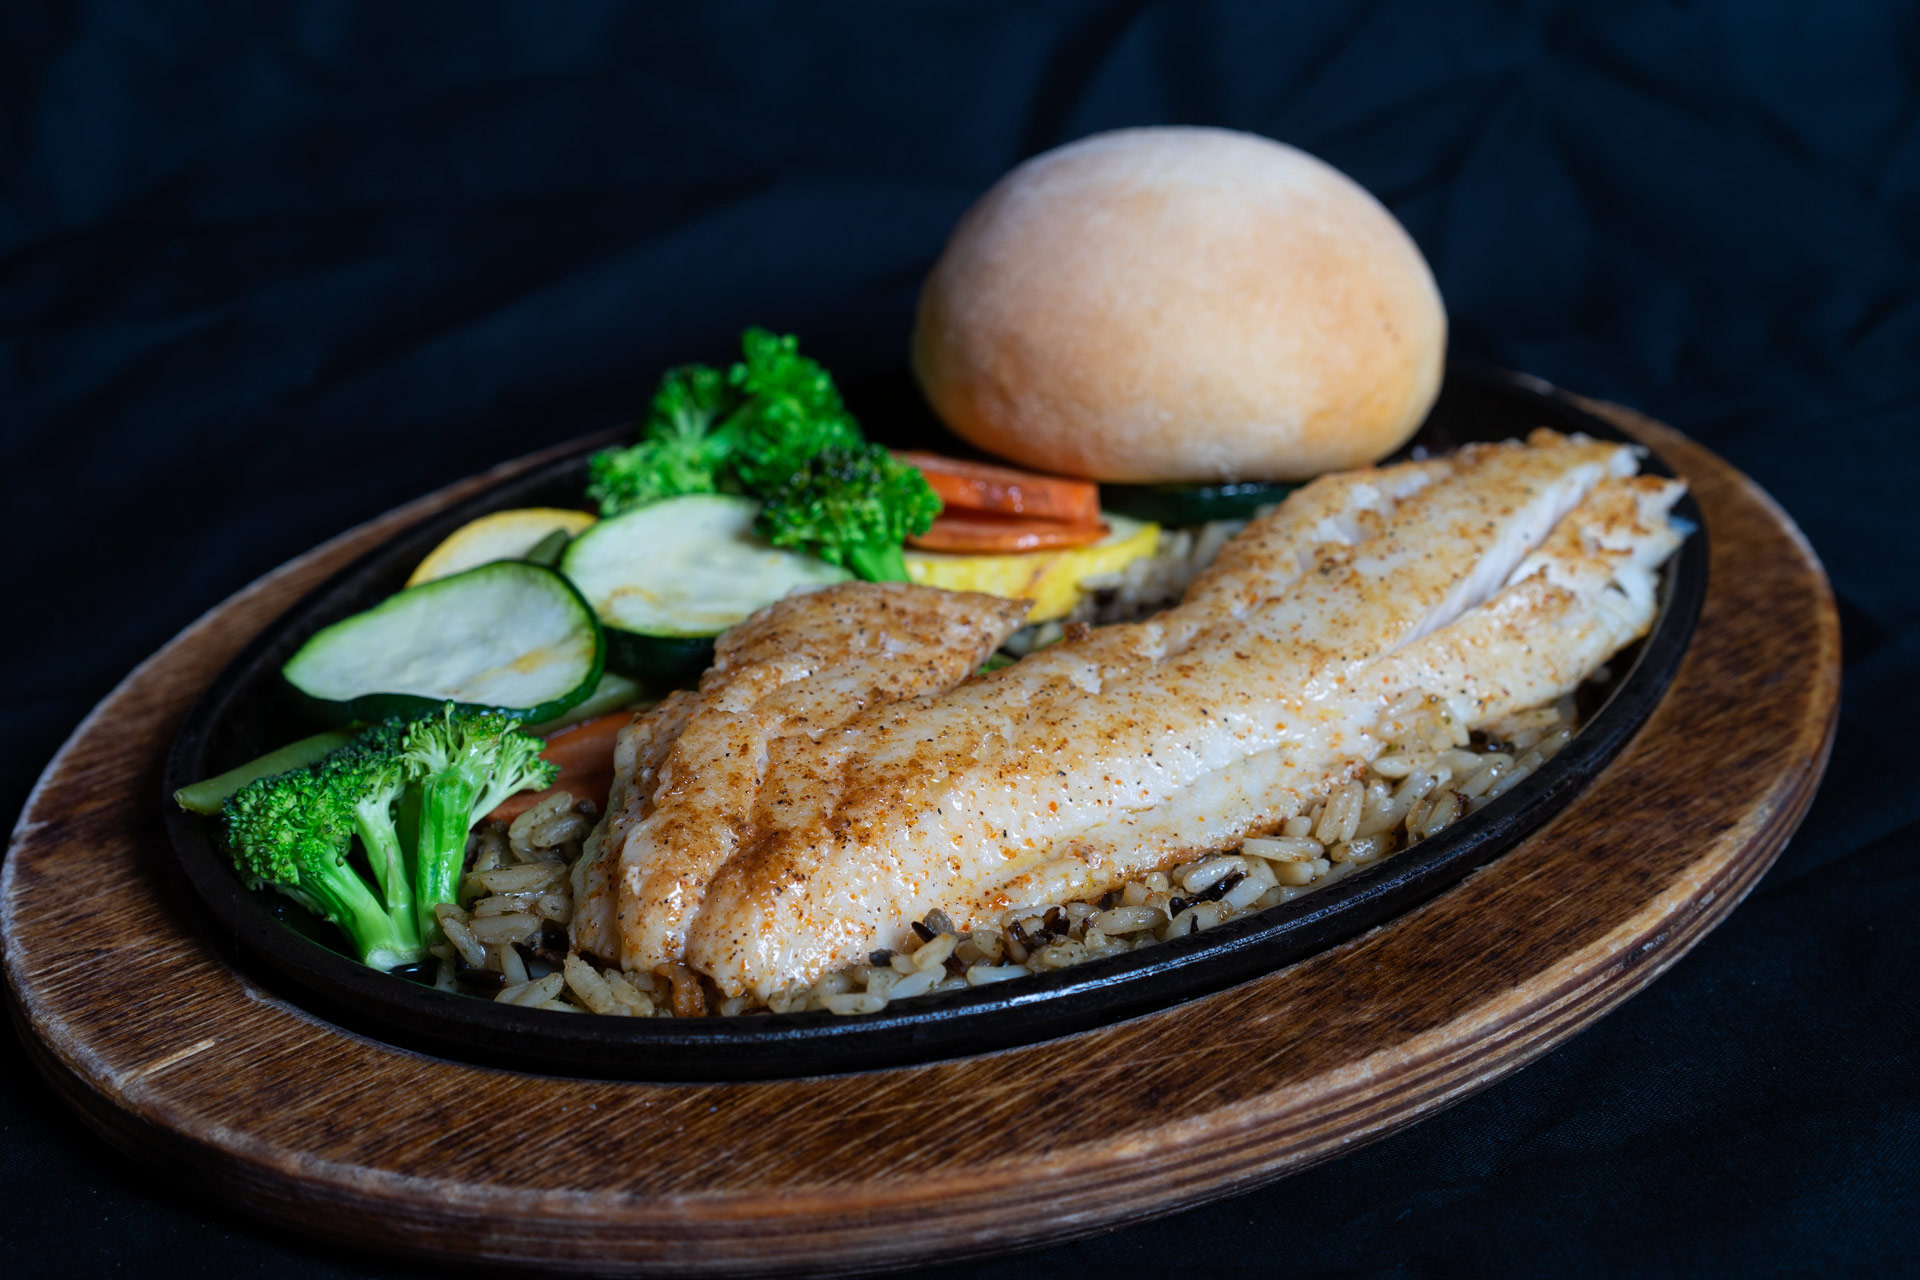 Grilled Walleye A flaky, sweet, succulent fillet served either grilled or fried over a bed of wild rice. Accompanied by your choice of grilled or steamed vegetables and a house prepared yeast roll. 17.00  (Click here to learn more about the Walleye)